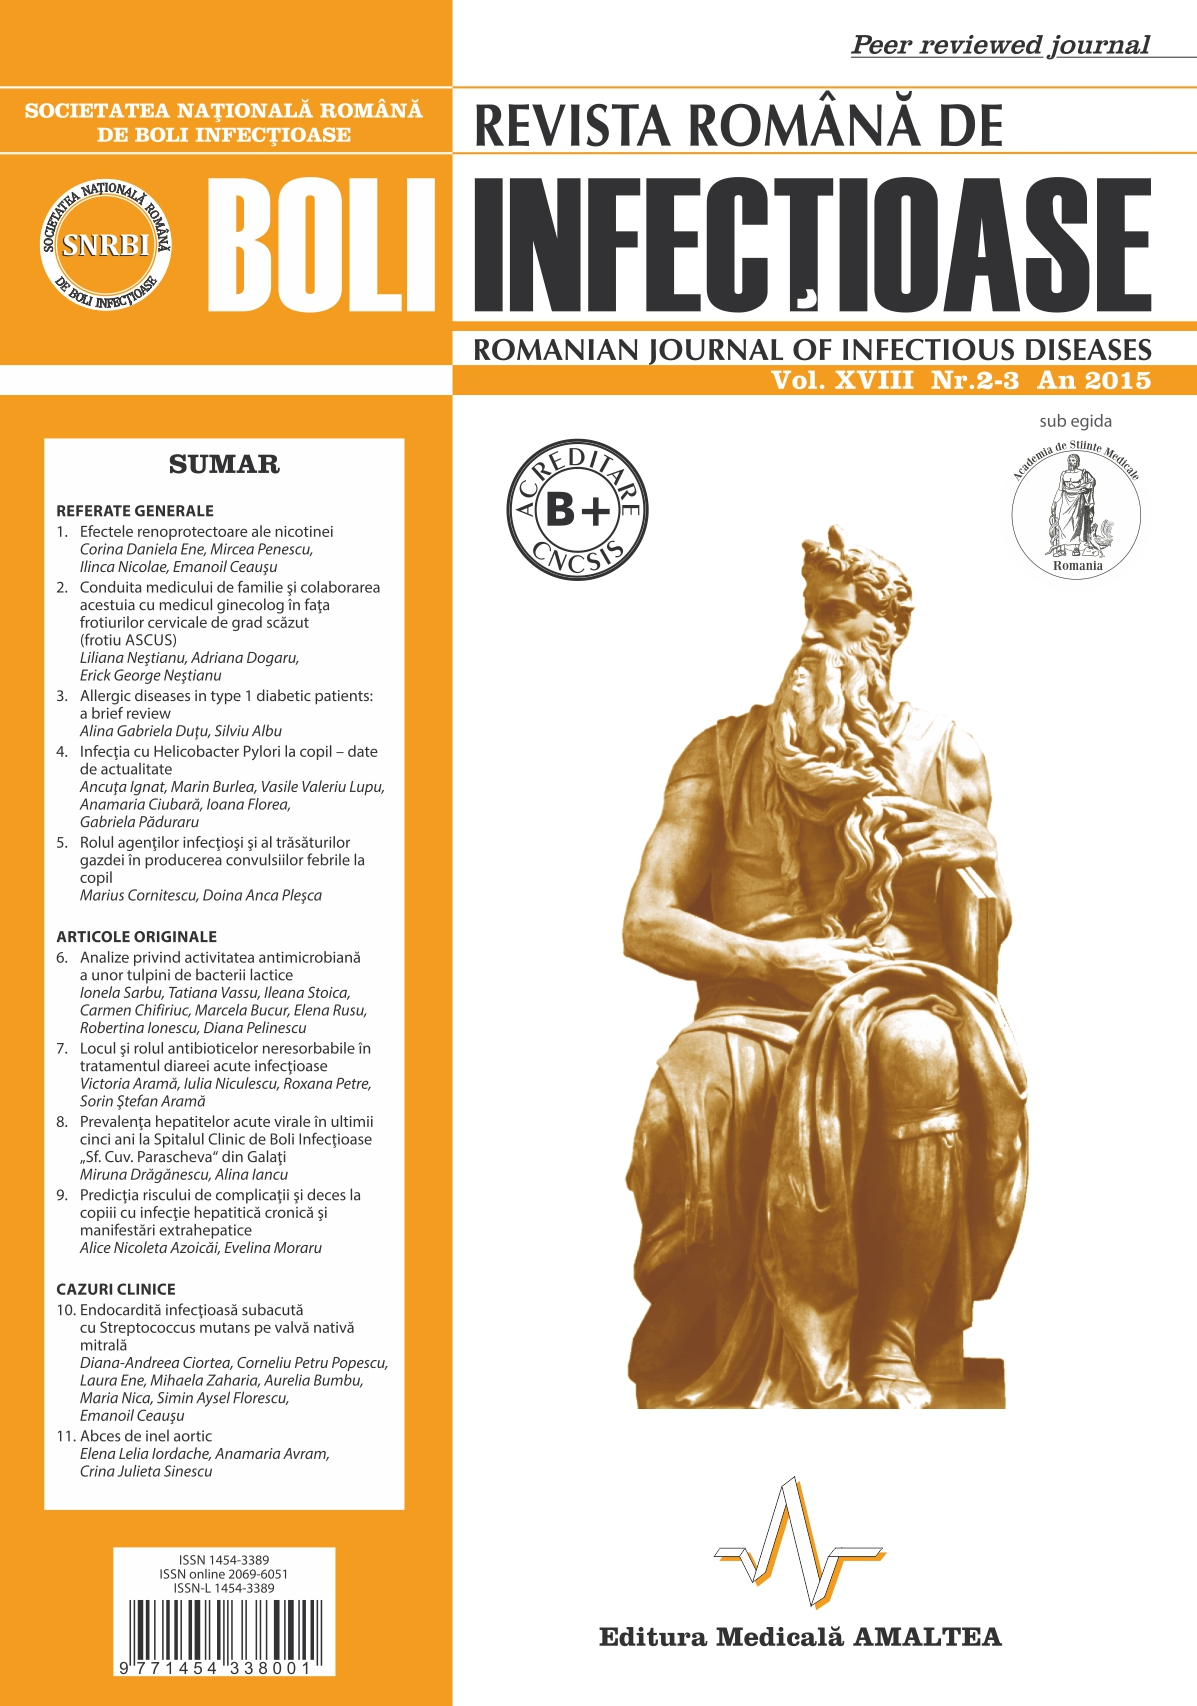 Revista Romana de Boli Infectioase | Vol. XVIII, No. 2-3, 2015